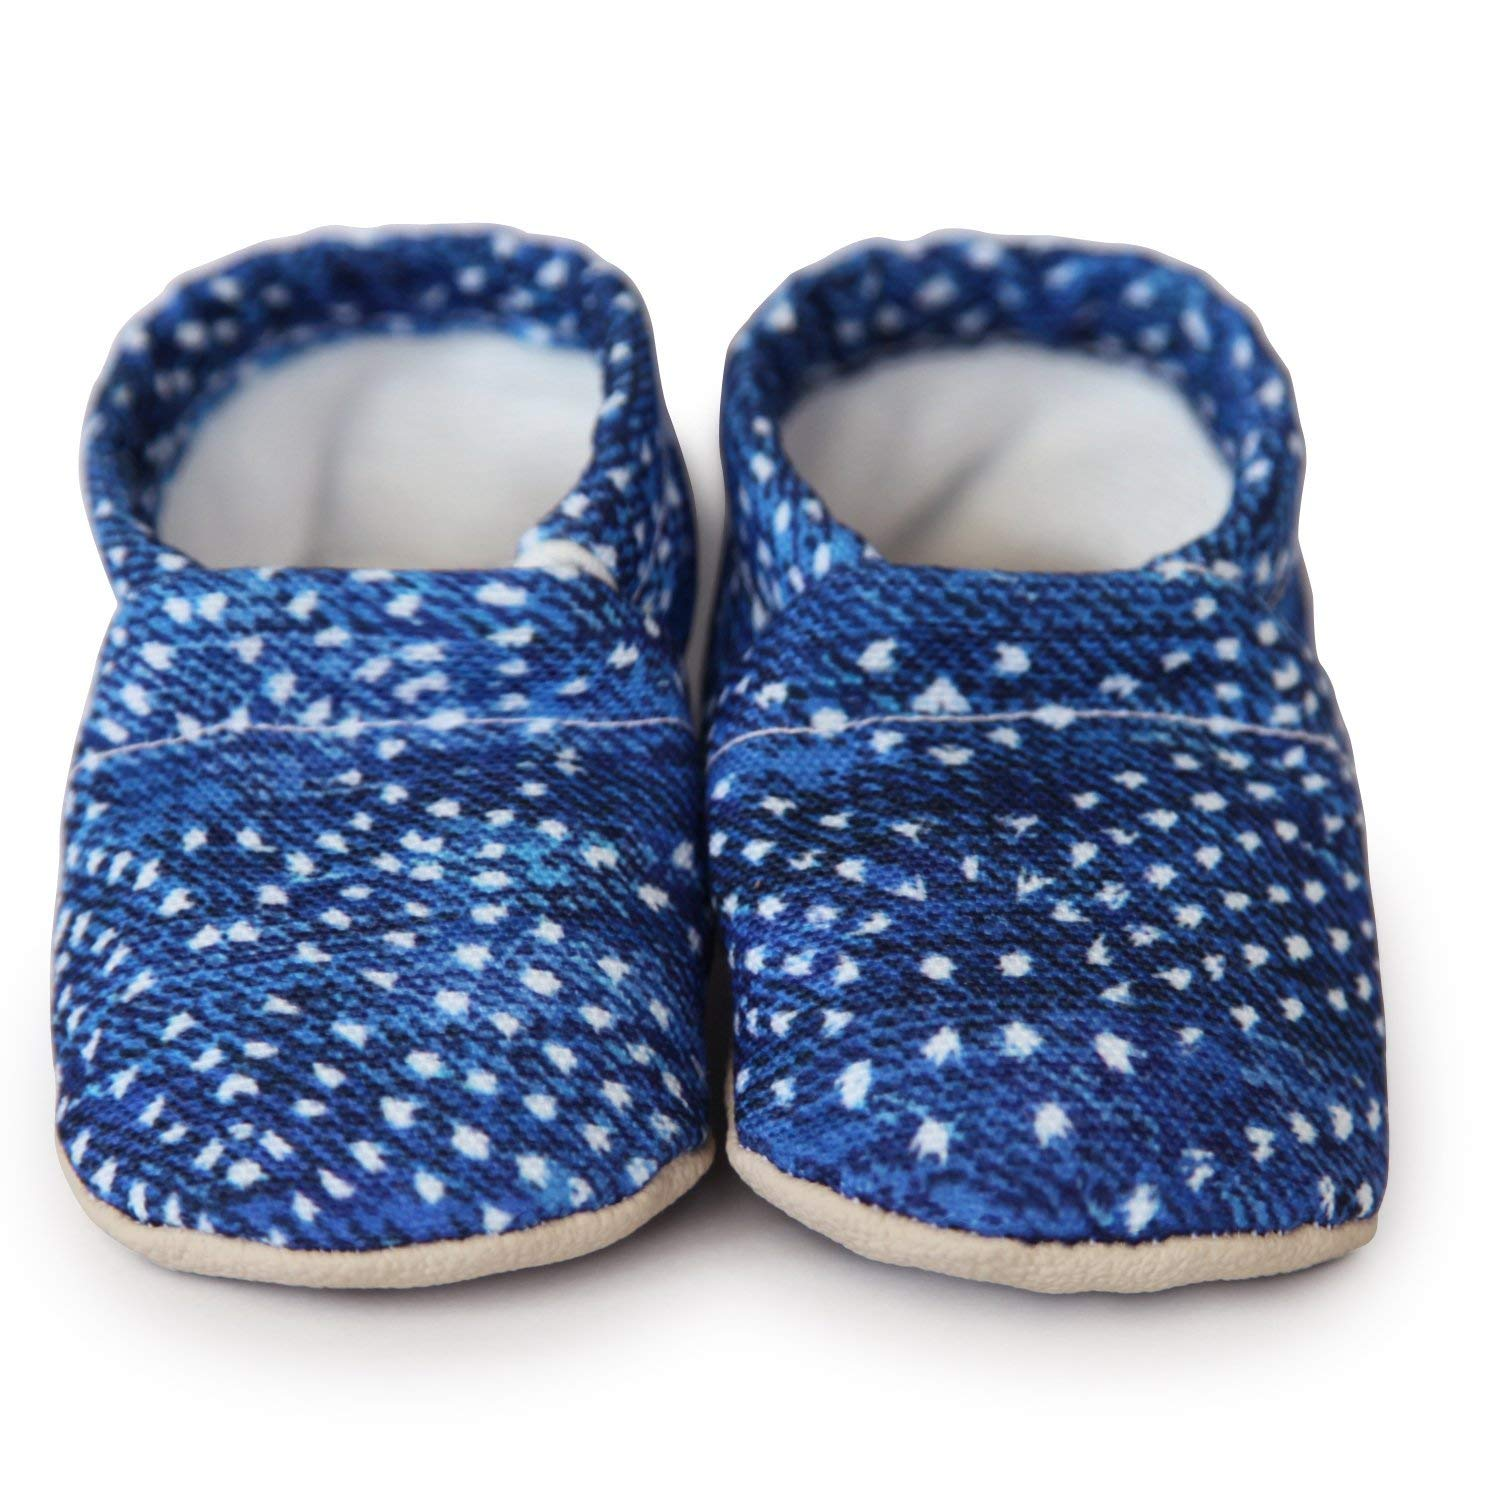 CLAMFEET Organic soft soled baby shoes, LEVI